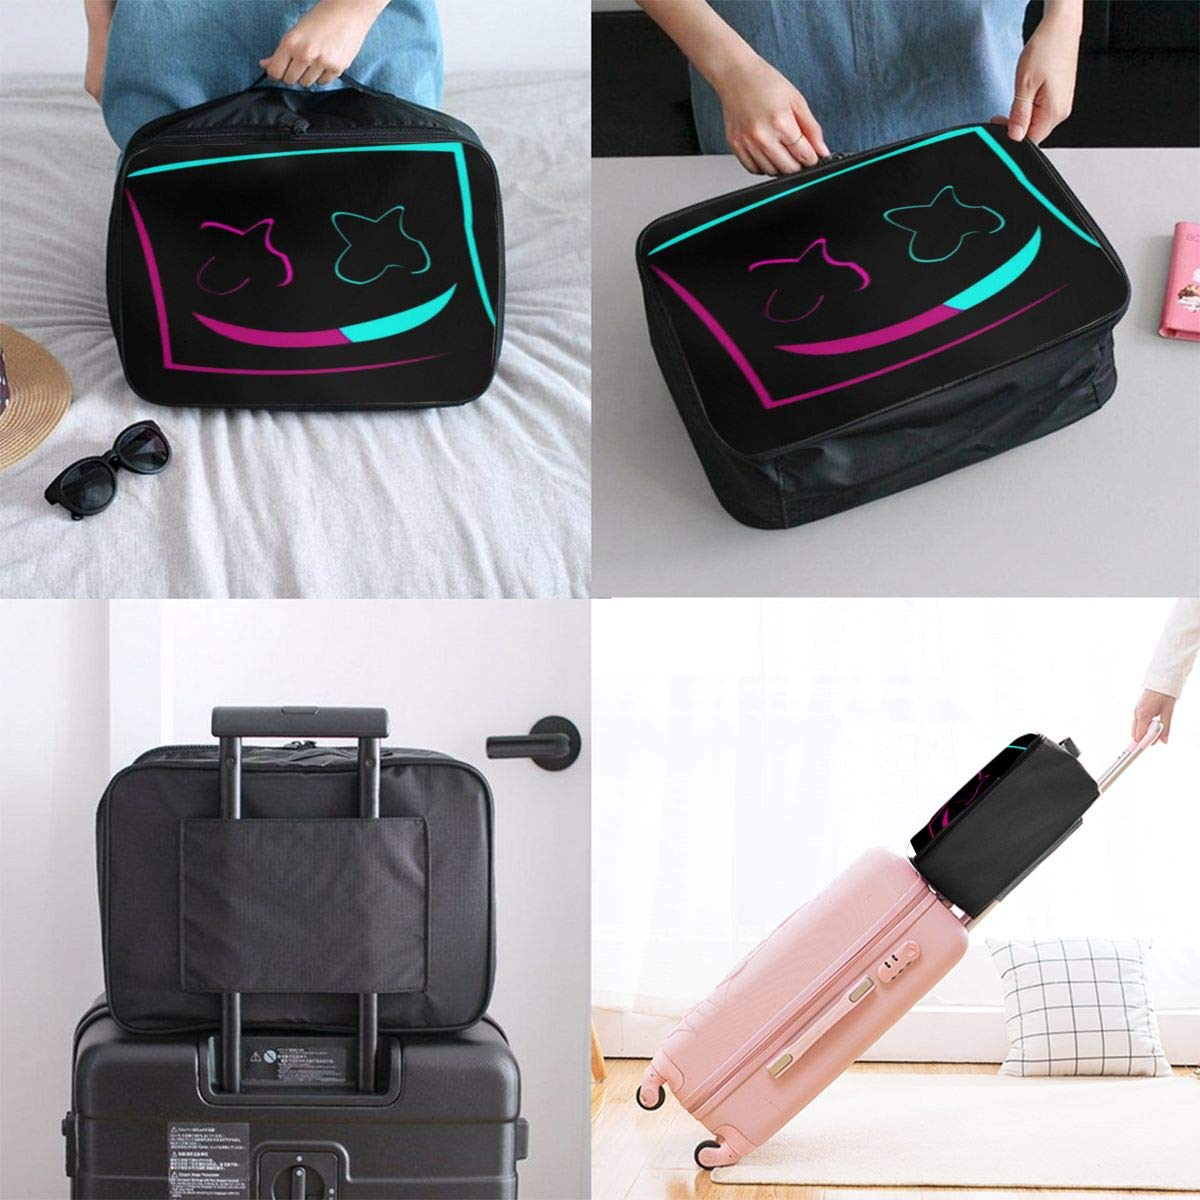 Mars/_hm/_ello Large Capacity Portable Luggage Bag Travel Lightweight Waterproof Storage Carry Luggage Duffel Tote Bag